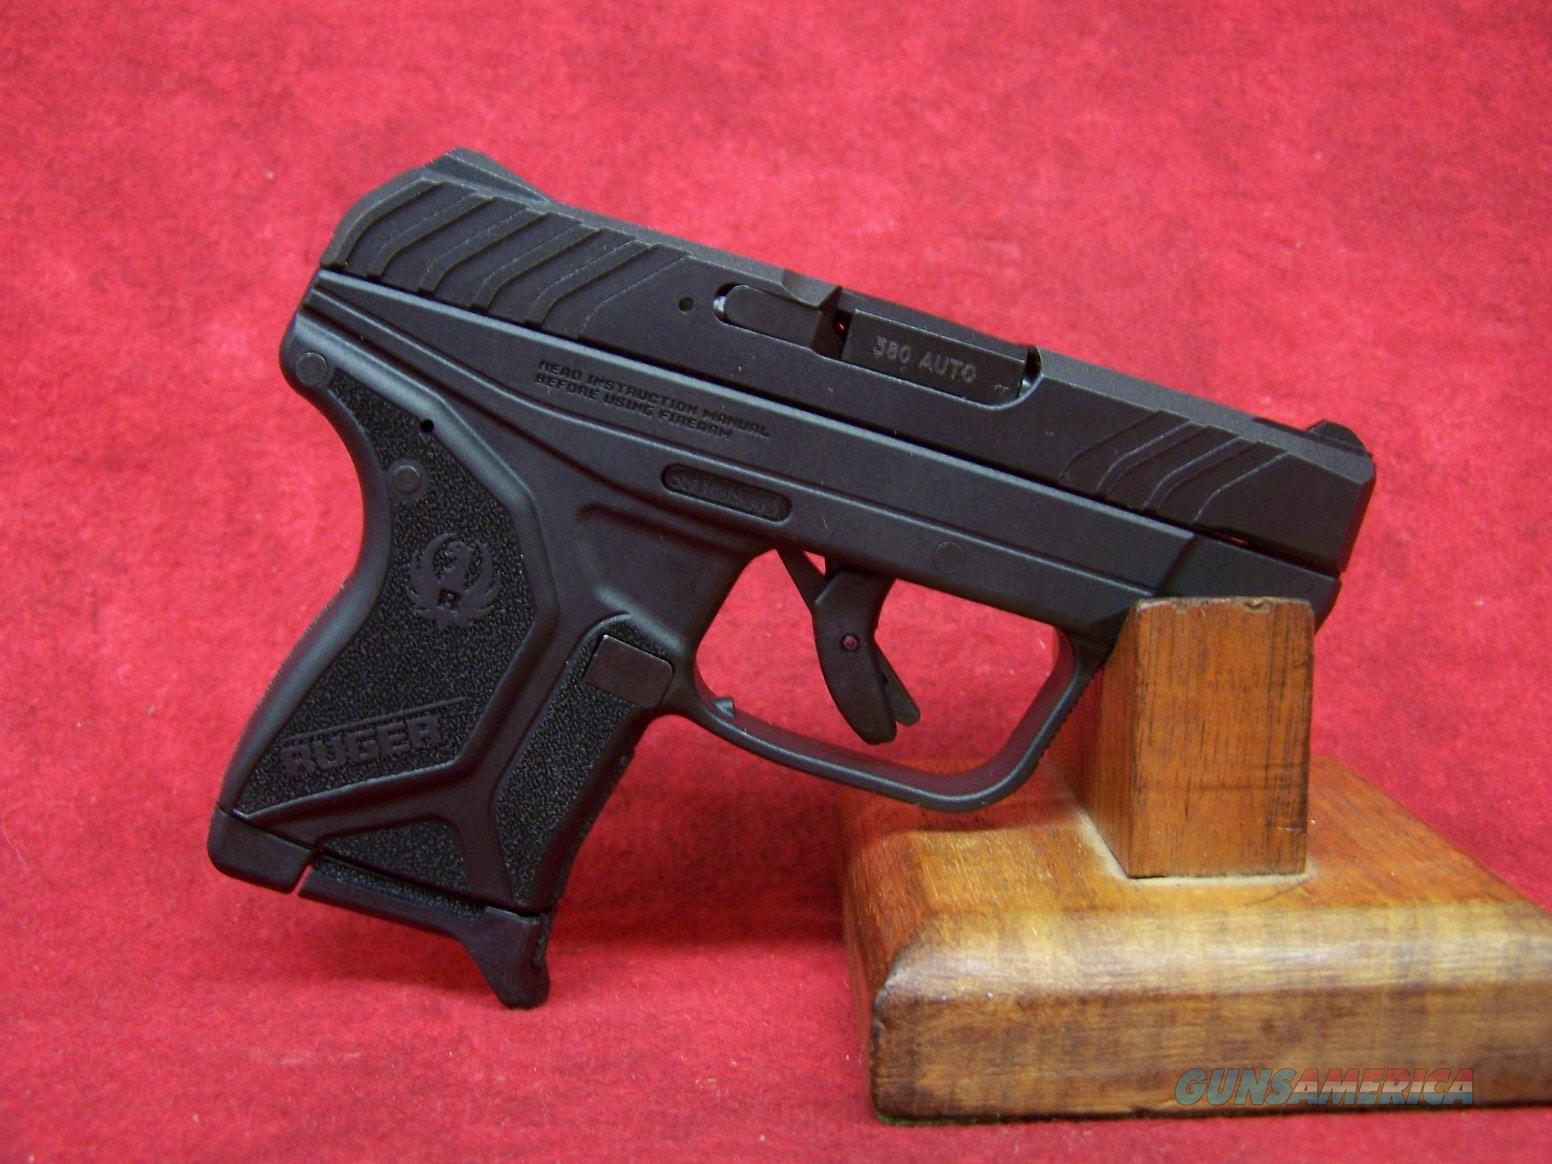 """RUGER LCP II 380 ACP 2.75"""" BLUED ALLOY 6RD (03750)  Guns > Pistols > Ruger Semi-Auto Pistols > LCP"""